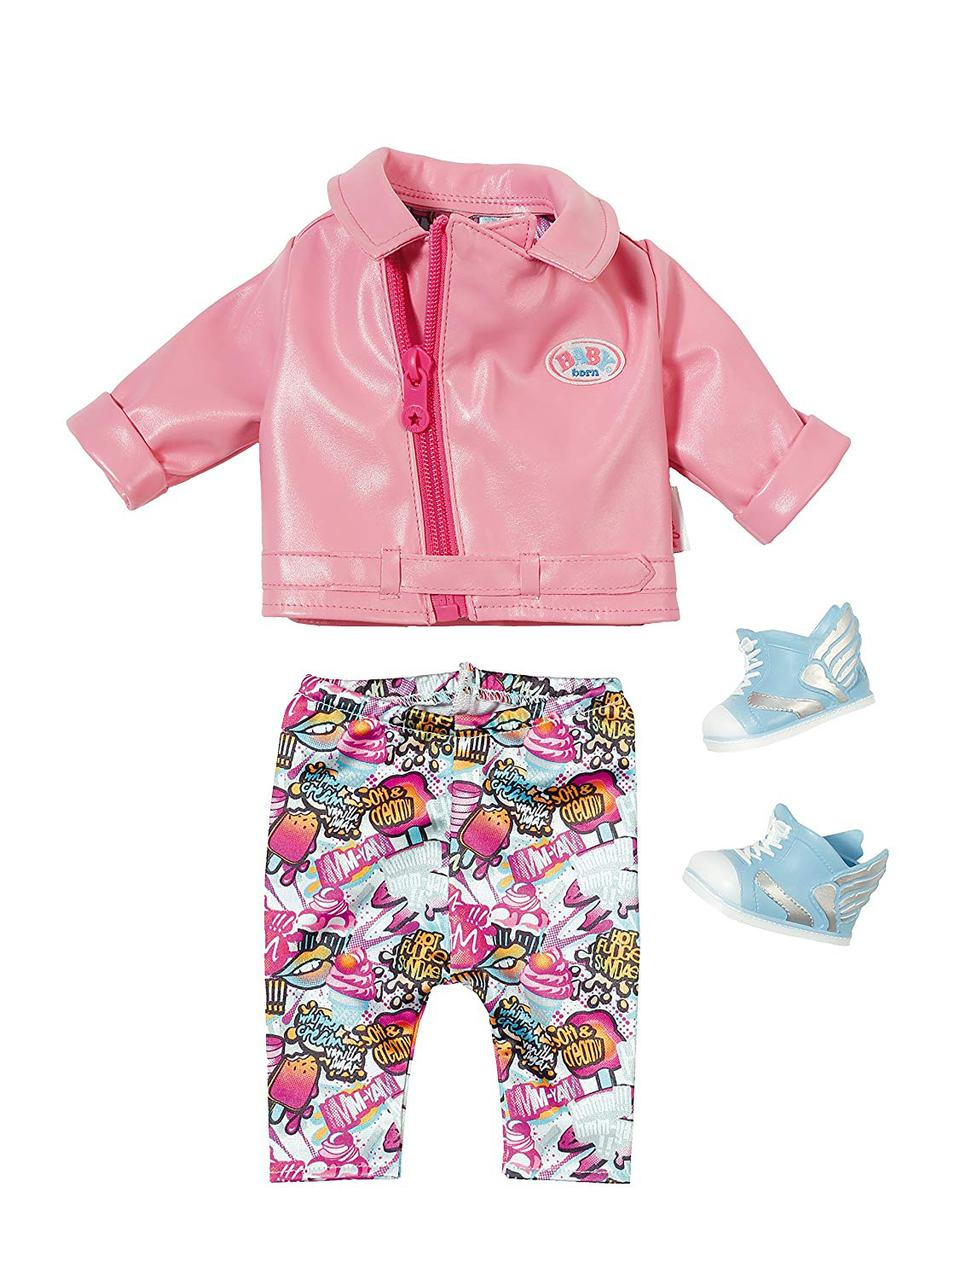 Одежда кукол Беби Борн Baby Born Костюм для скутера City Scooter Deluxe Outfit Zapf Creation 825259